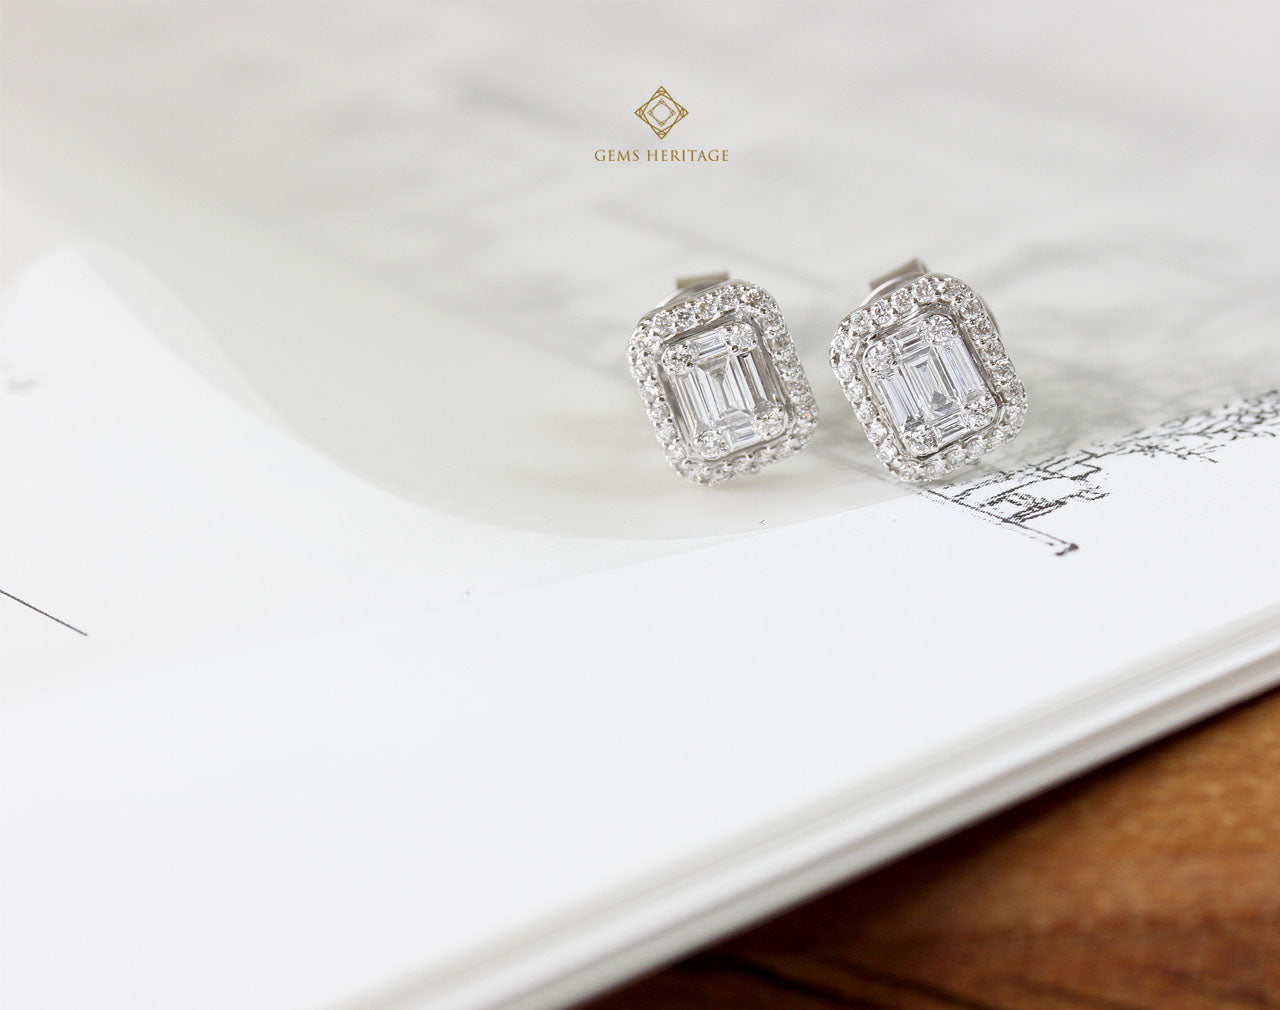 Emerald cut illusion setting diamond earrings (S size)